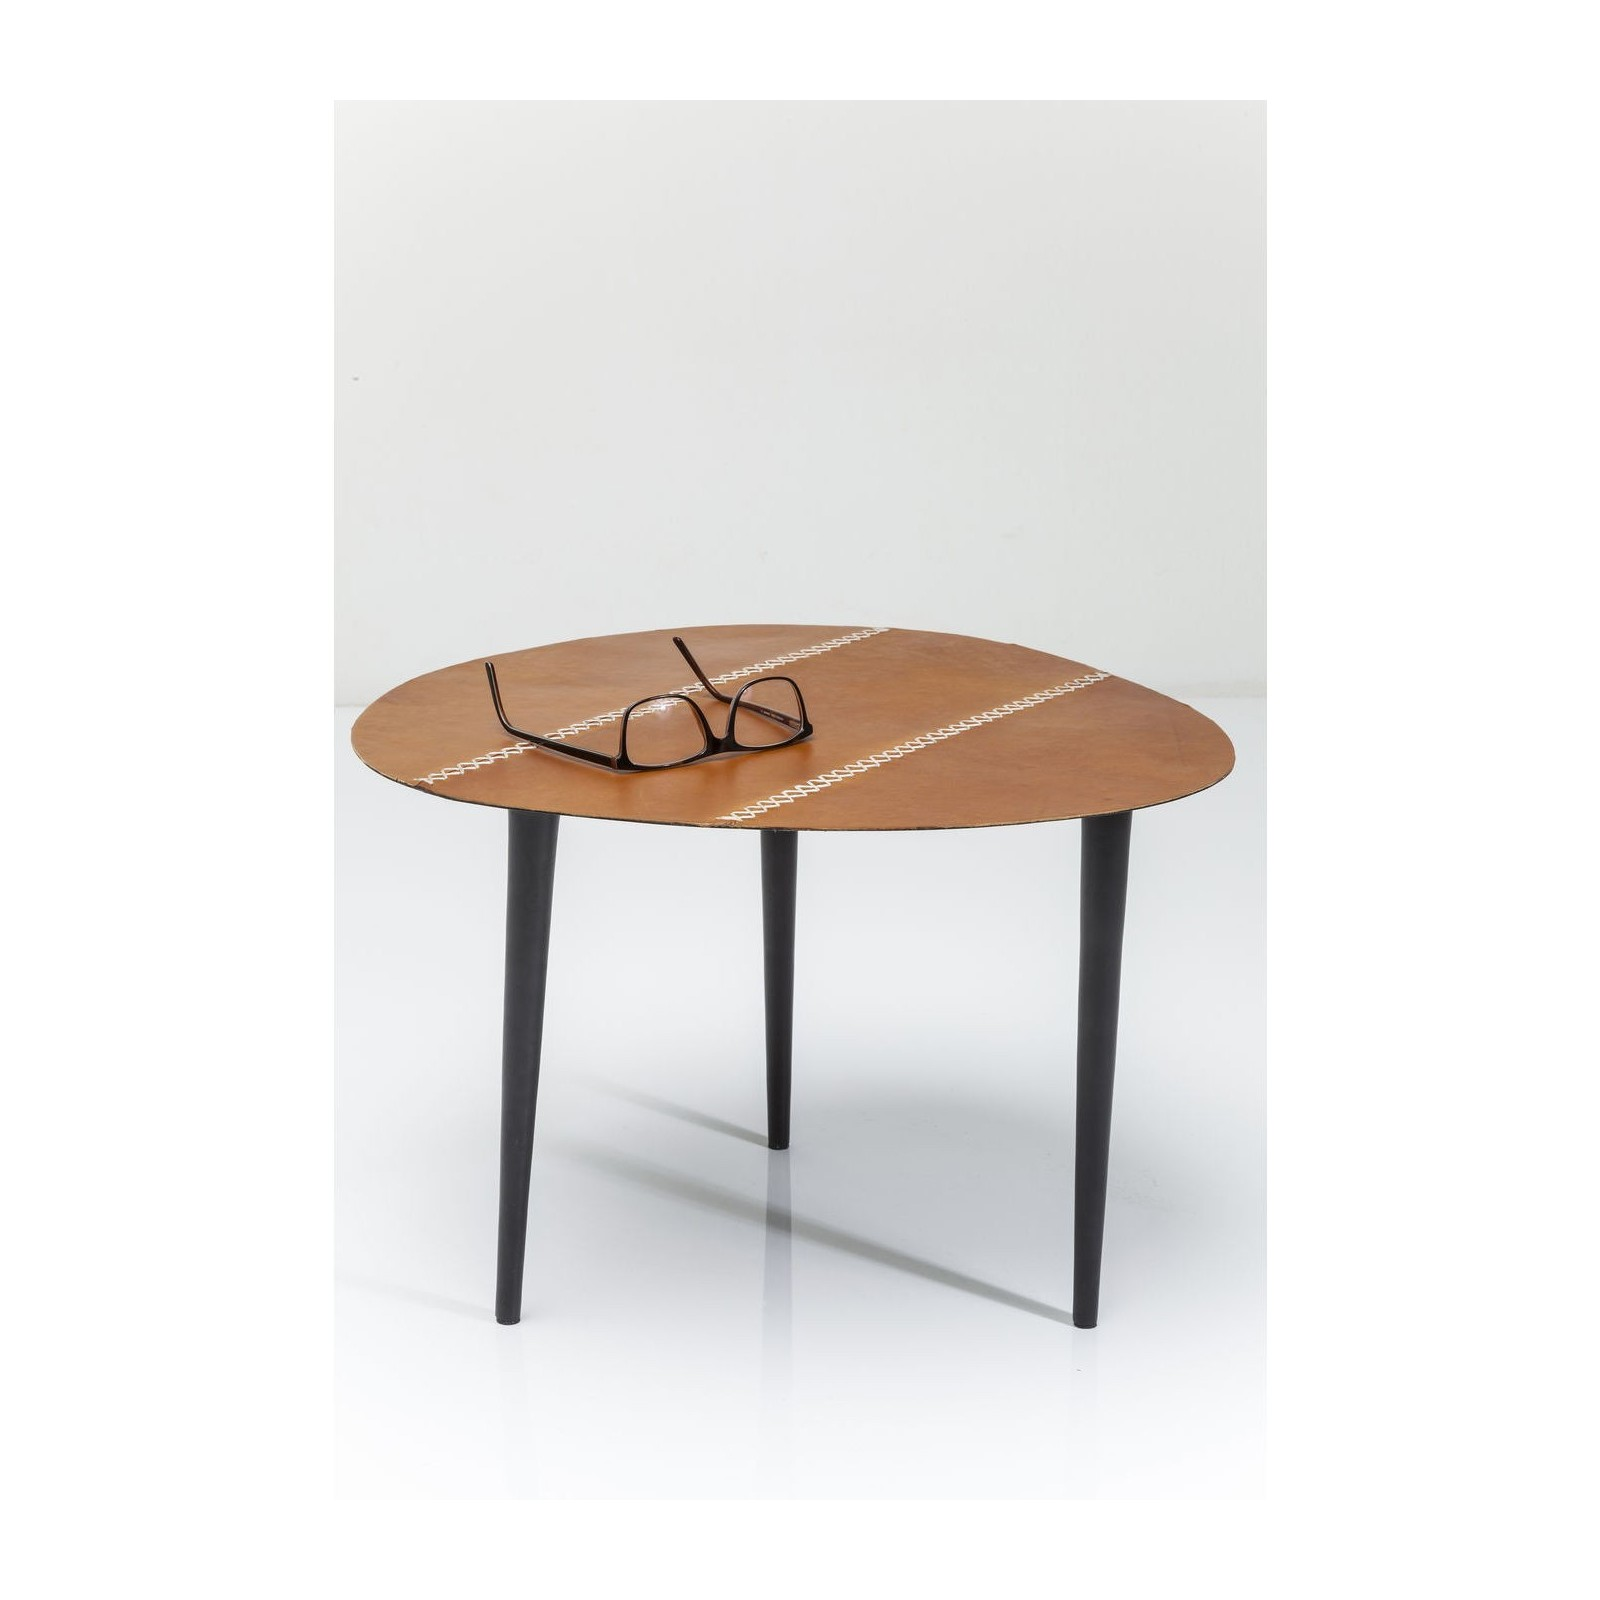 Table d 39 appoint egg cuir 46x50cm kare design - Table appoint design ...